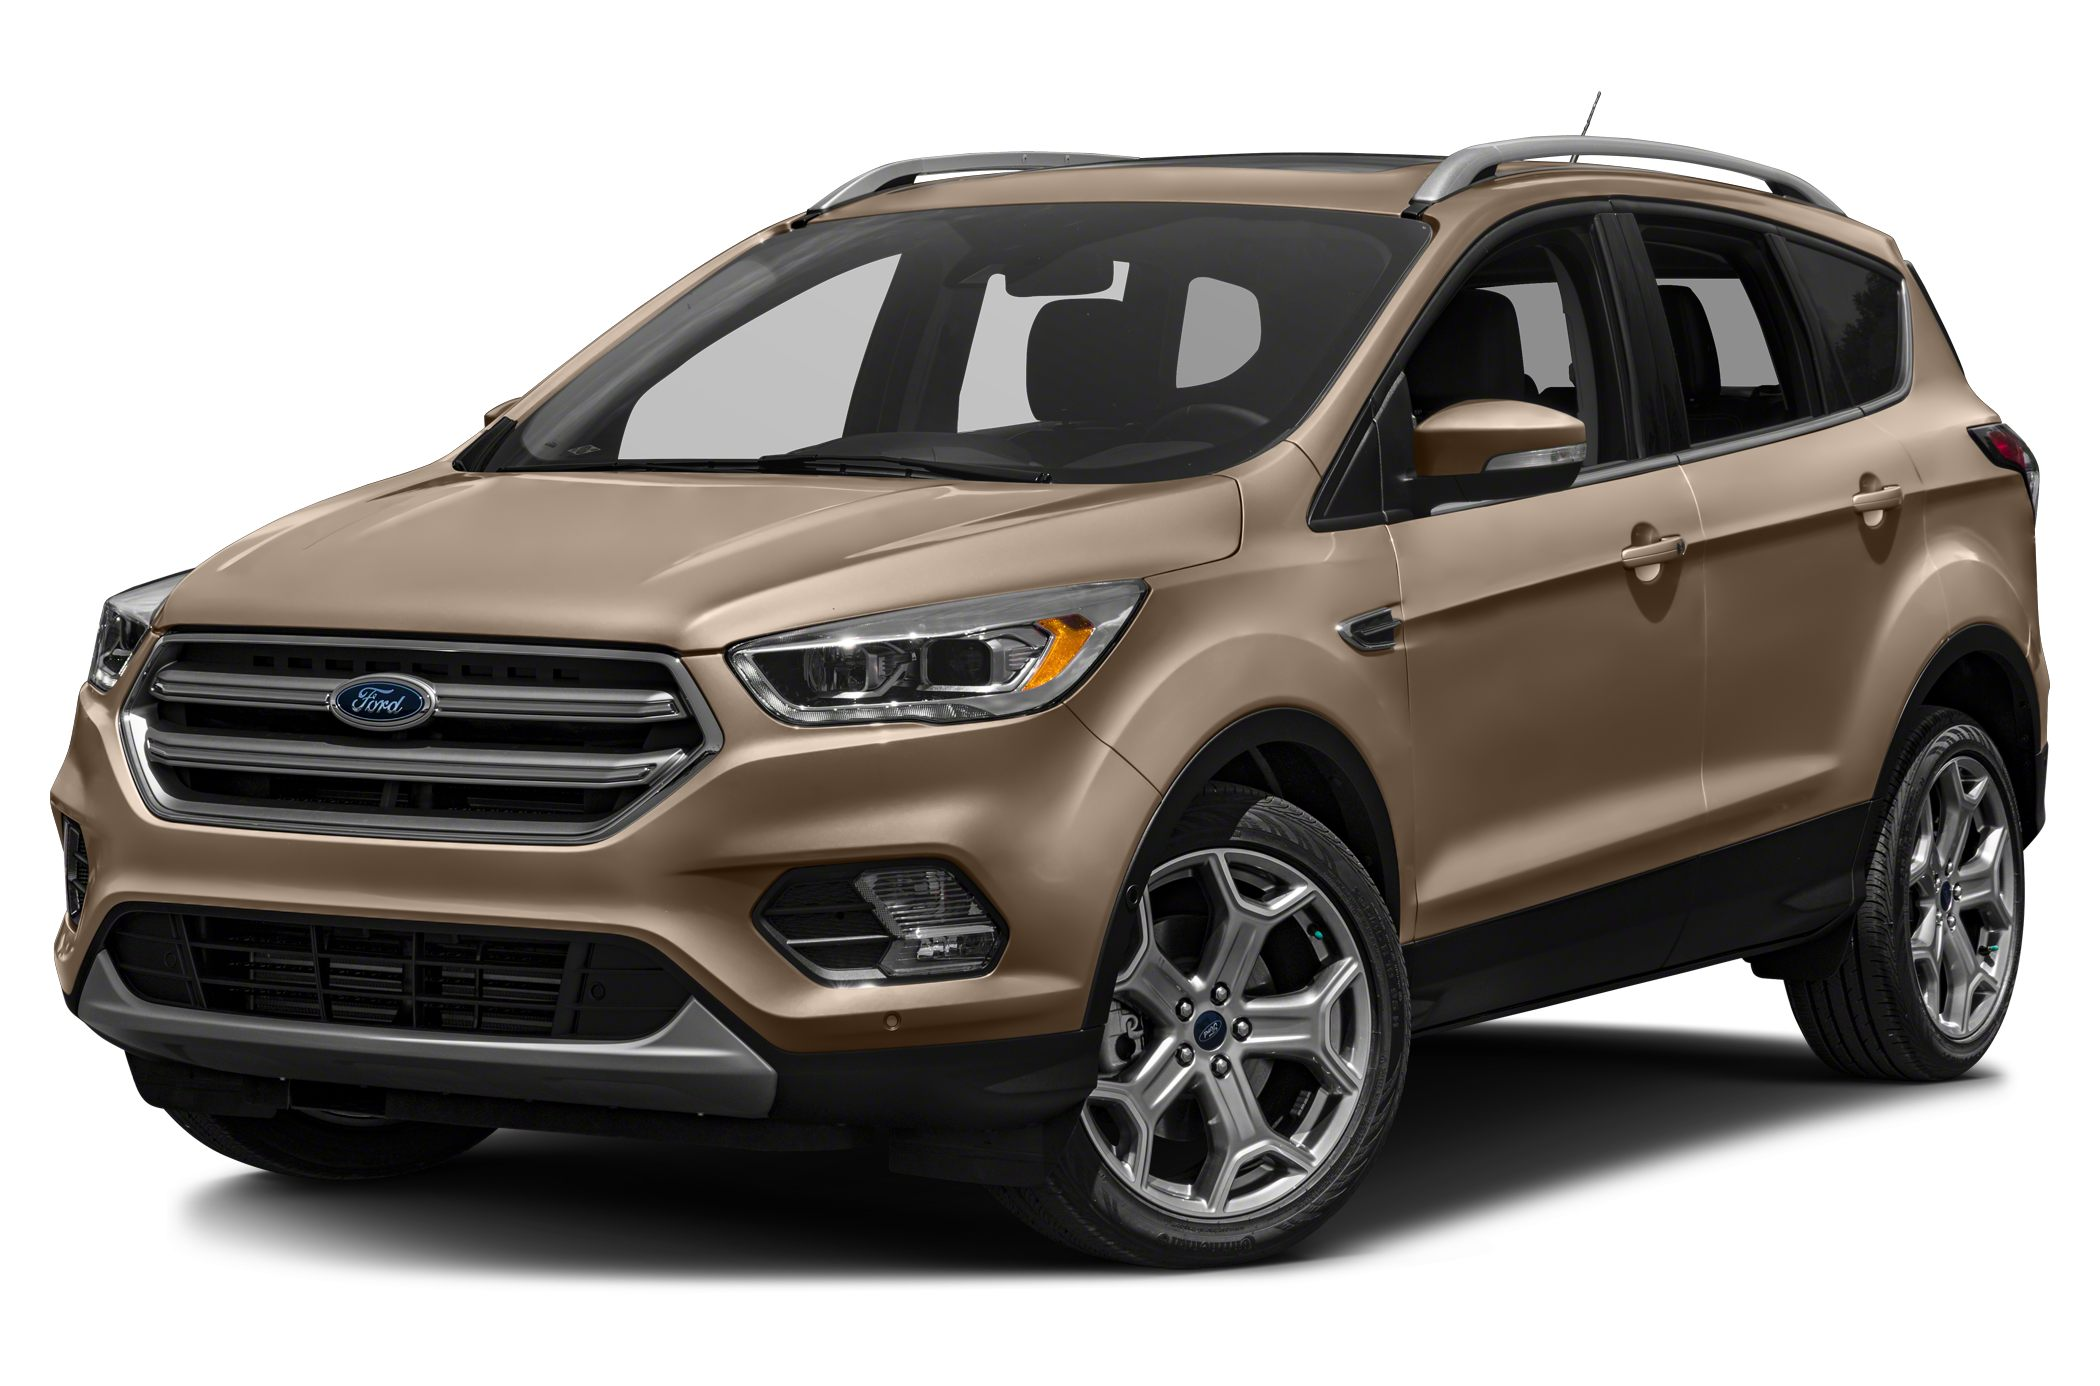 2018 Ford Escape Titanium The 2018 Ford Escape is a capable SUV It has versatile seatingcargo co